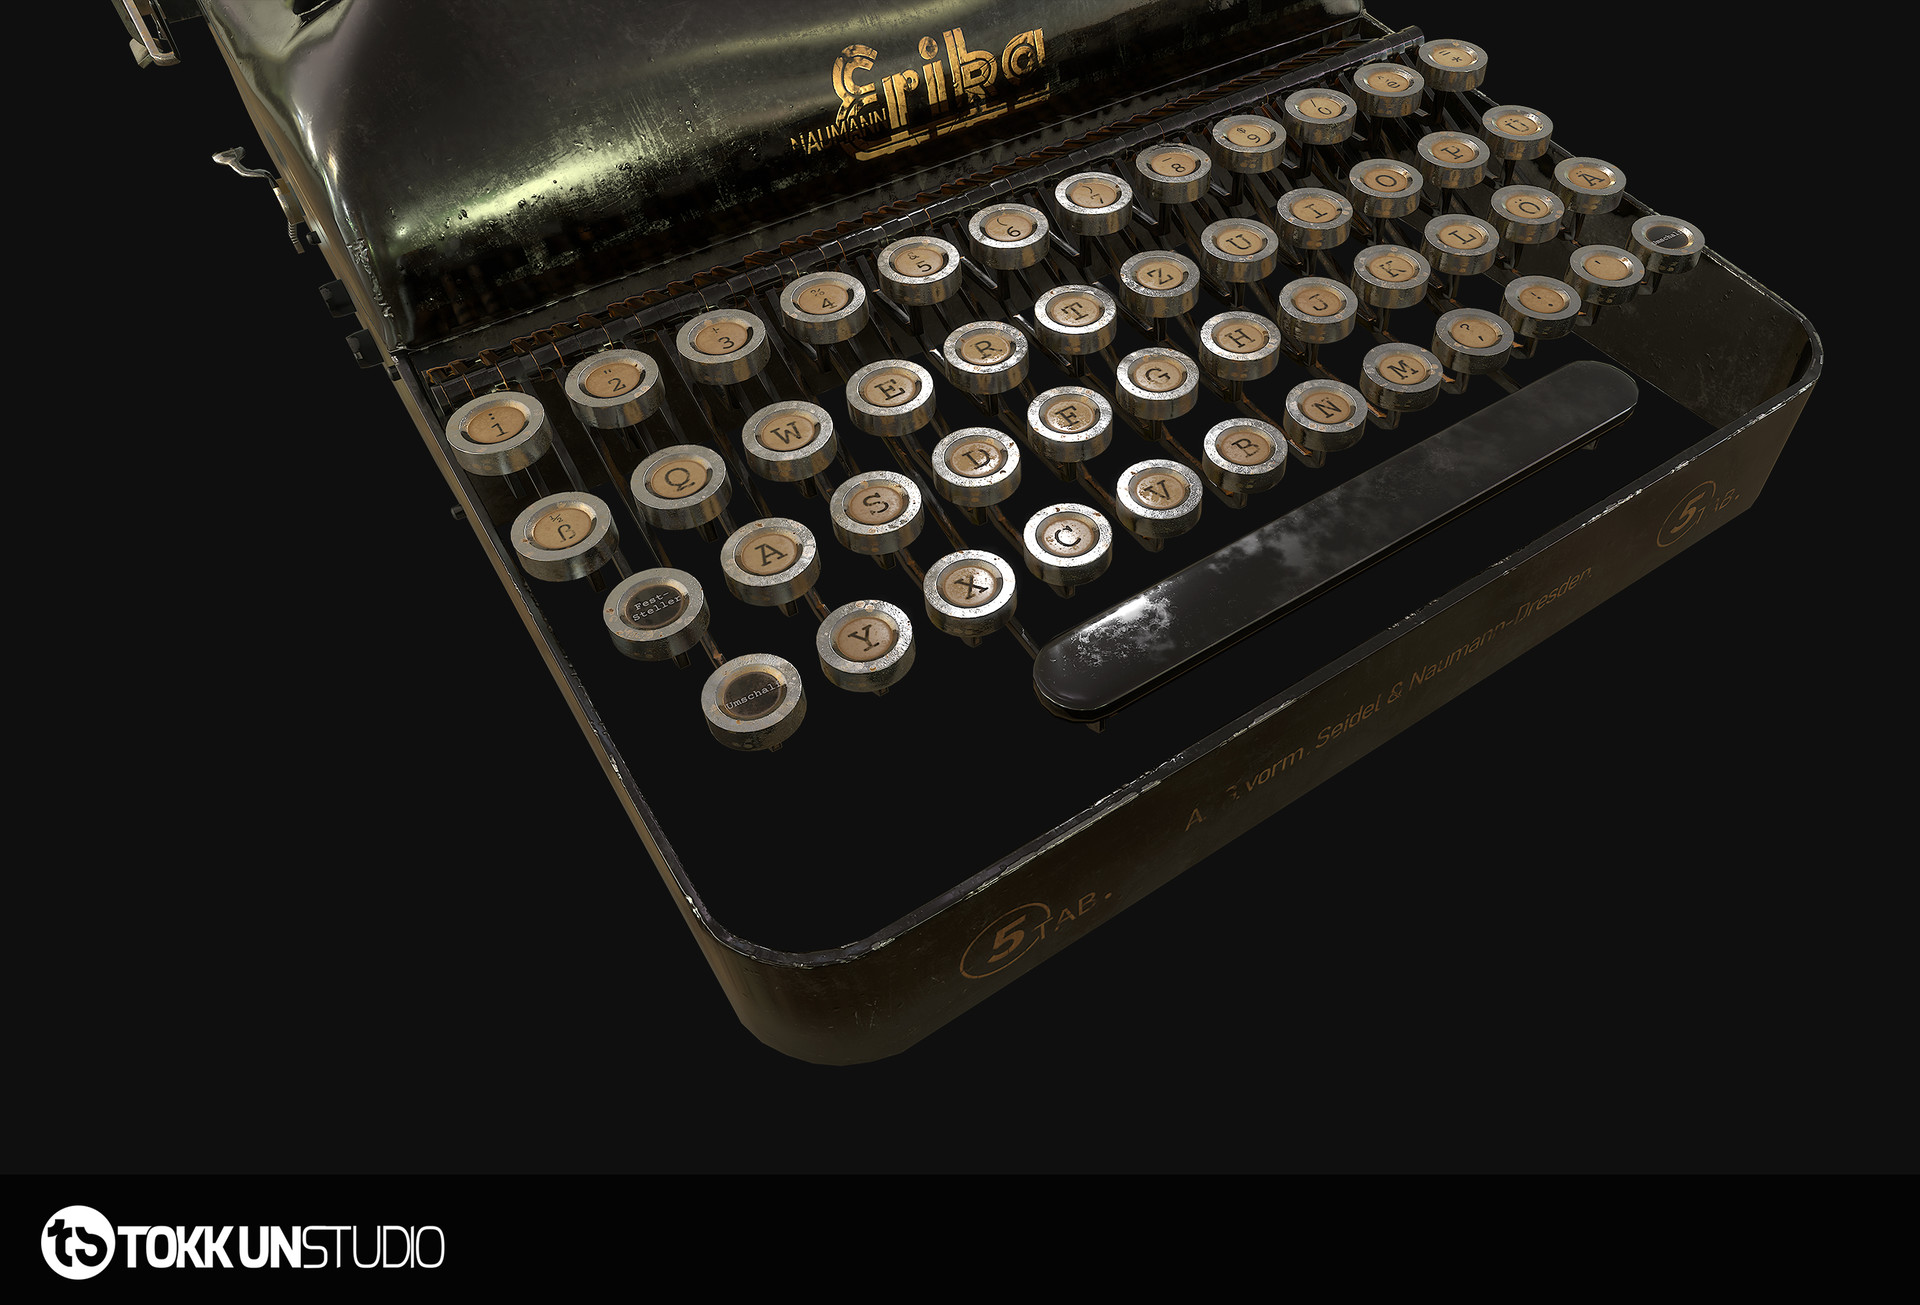 Tokkun studio beauty typewriter 02